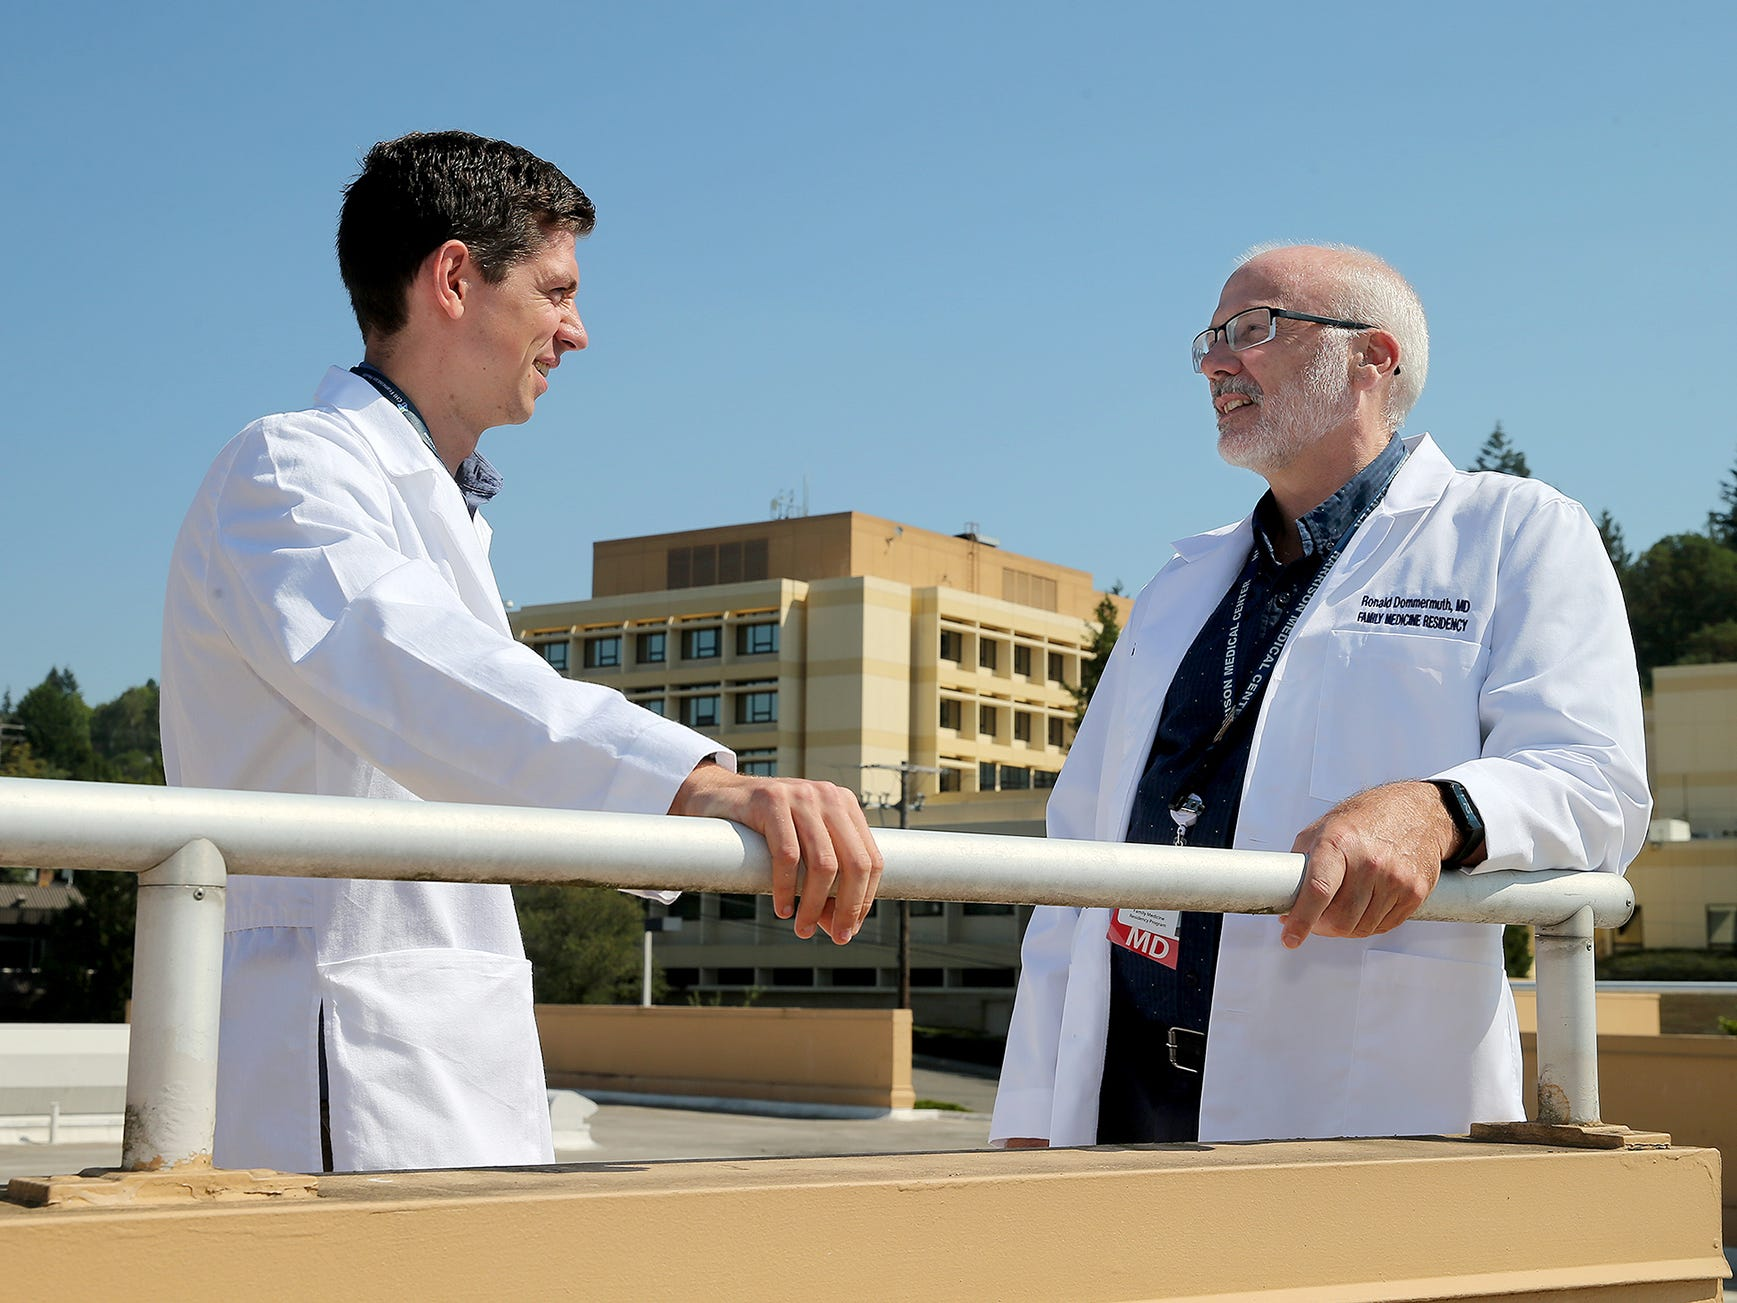 Harrison Medical Center resident Jacob Van Fleet, left, is one of eight residents who will undergo three years of training through Harrison's new family medicine residency program. They are supervised by physicians, including Ronald Dommermuth, right.